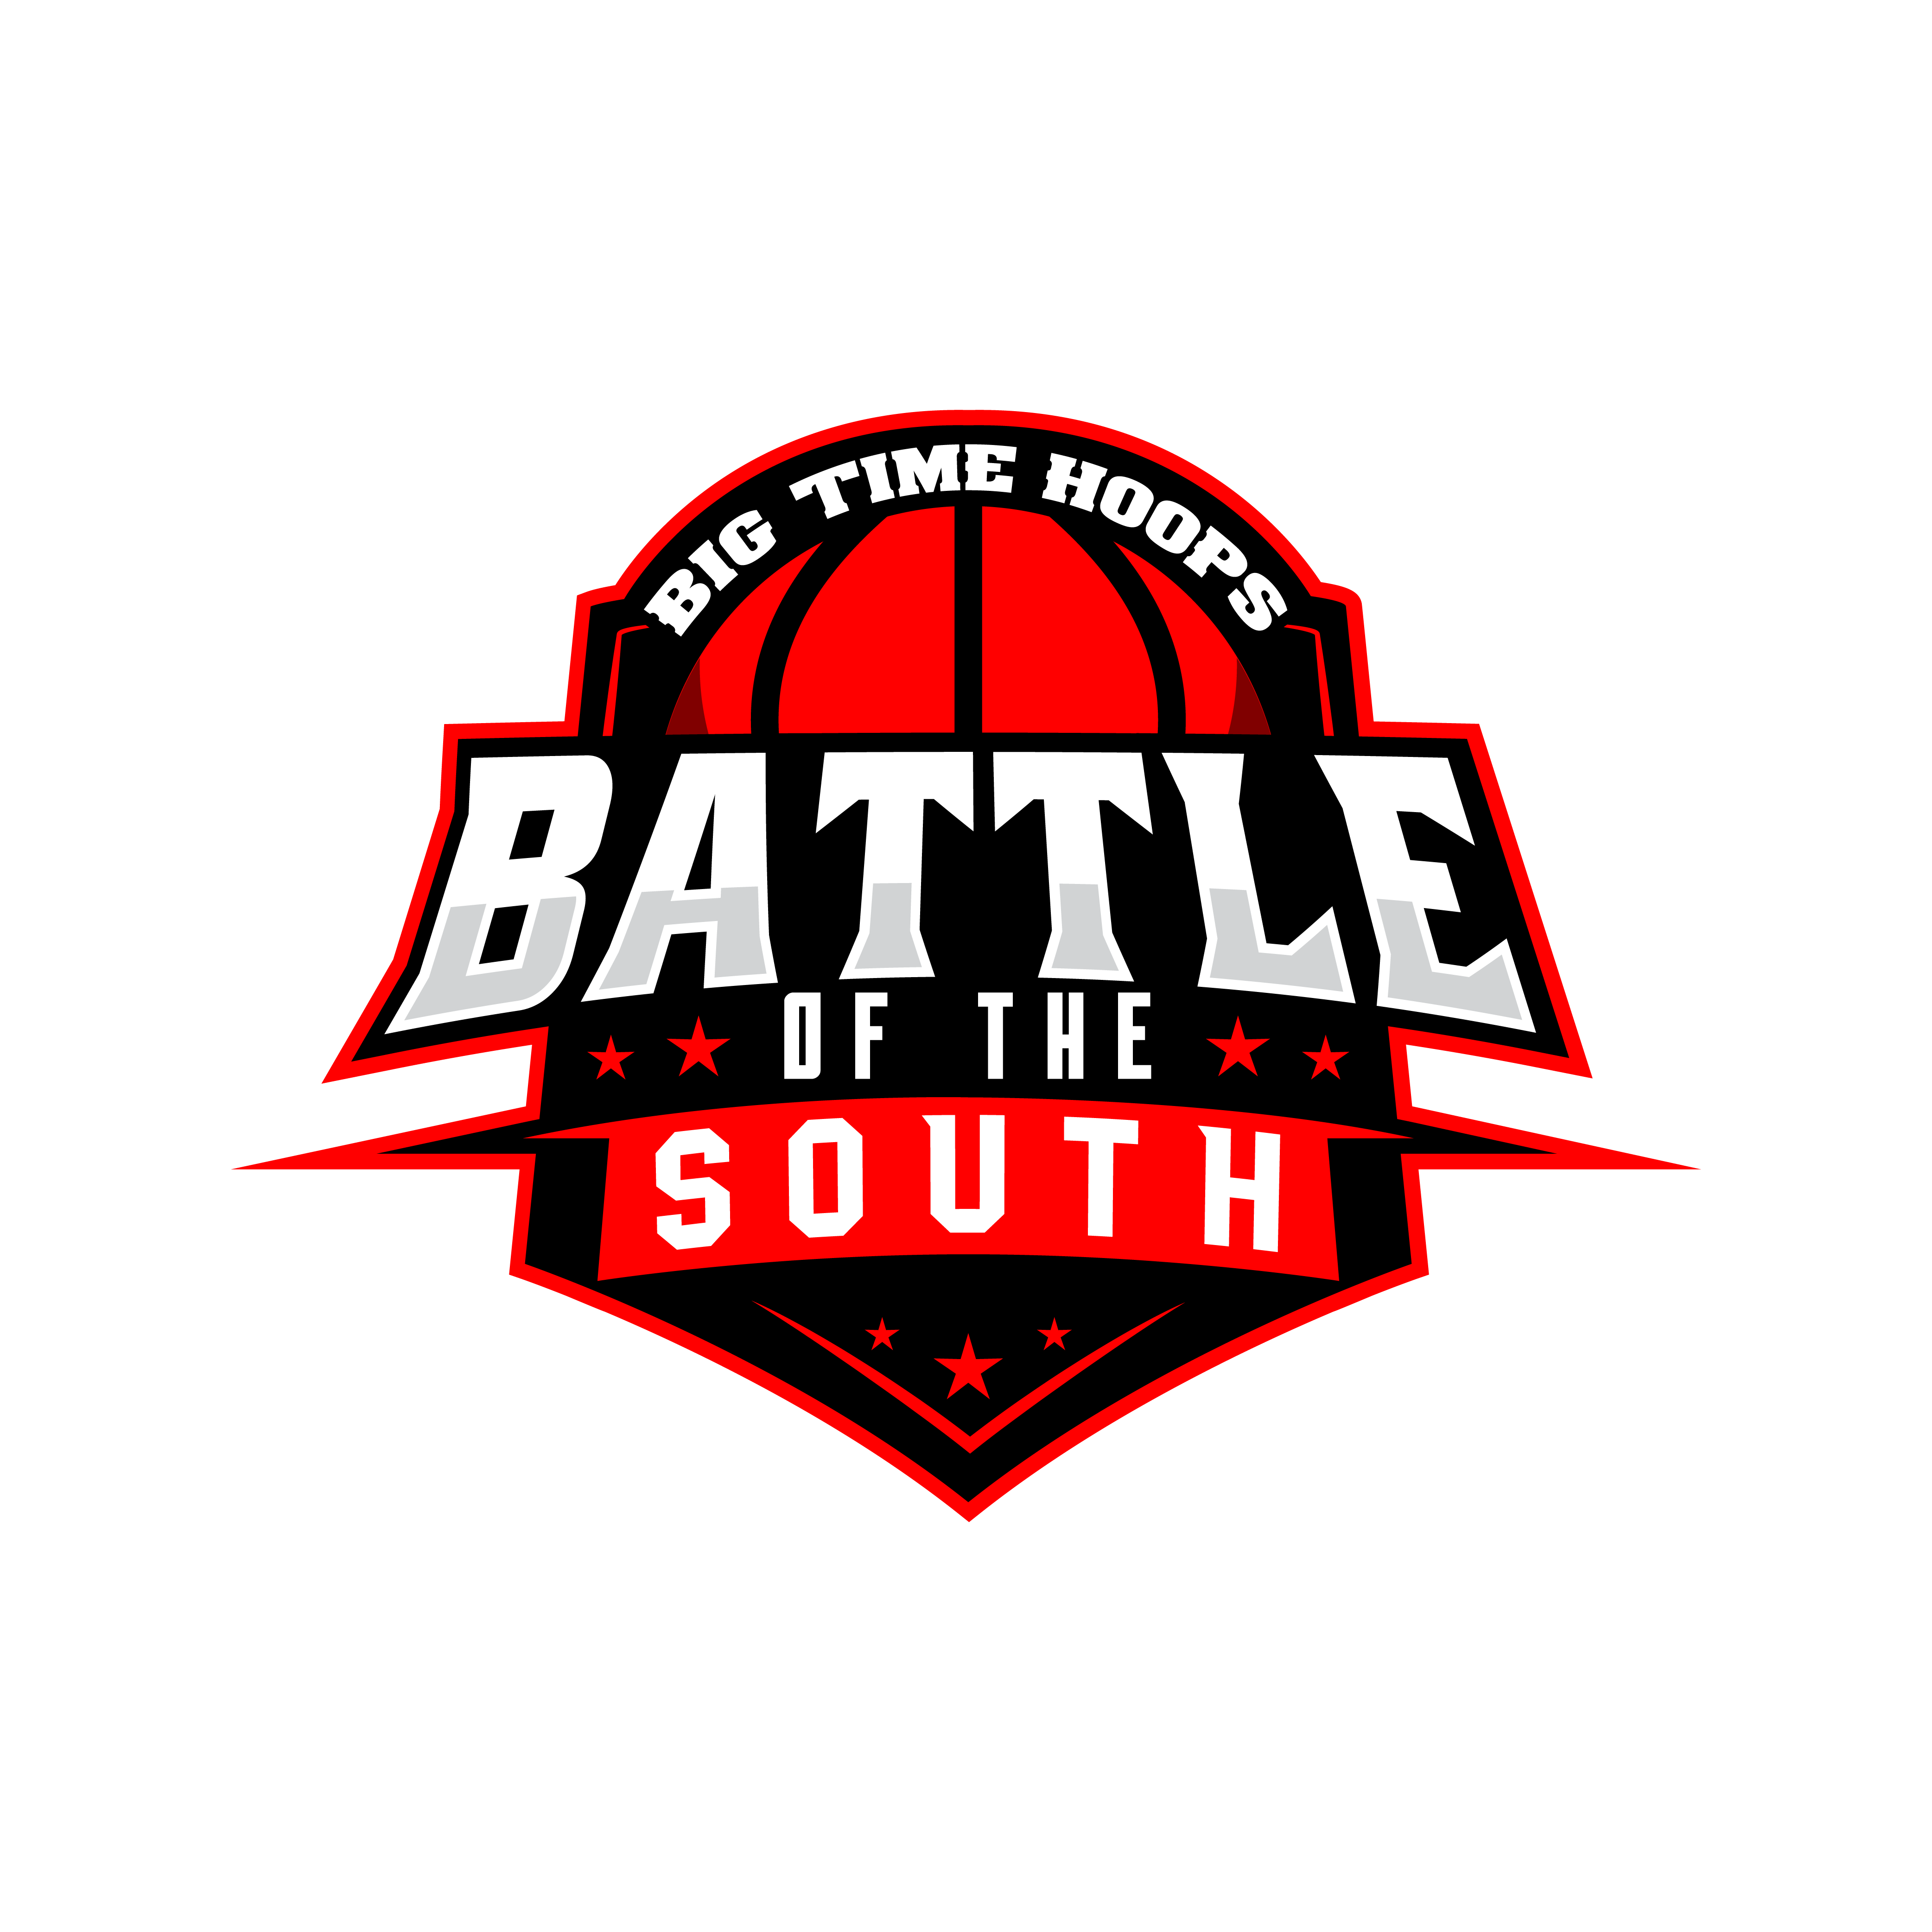 BATTLE OF THE SOUTH – South Carolina